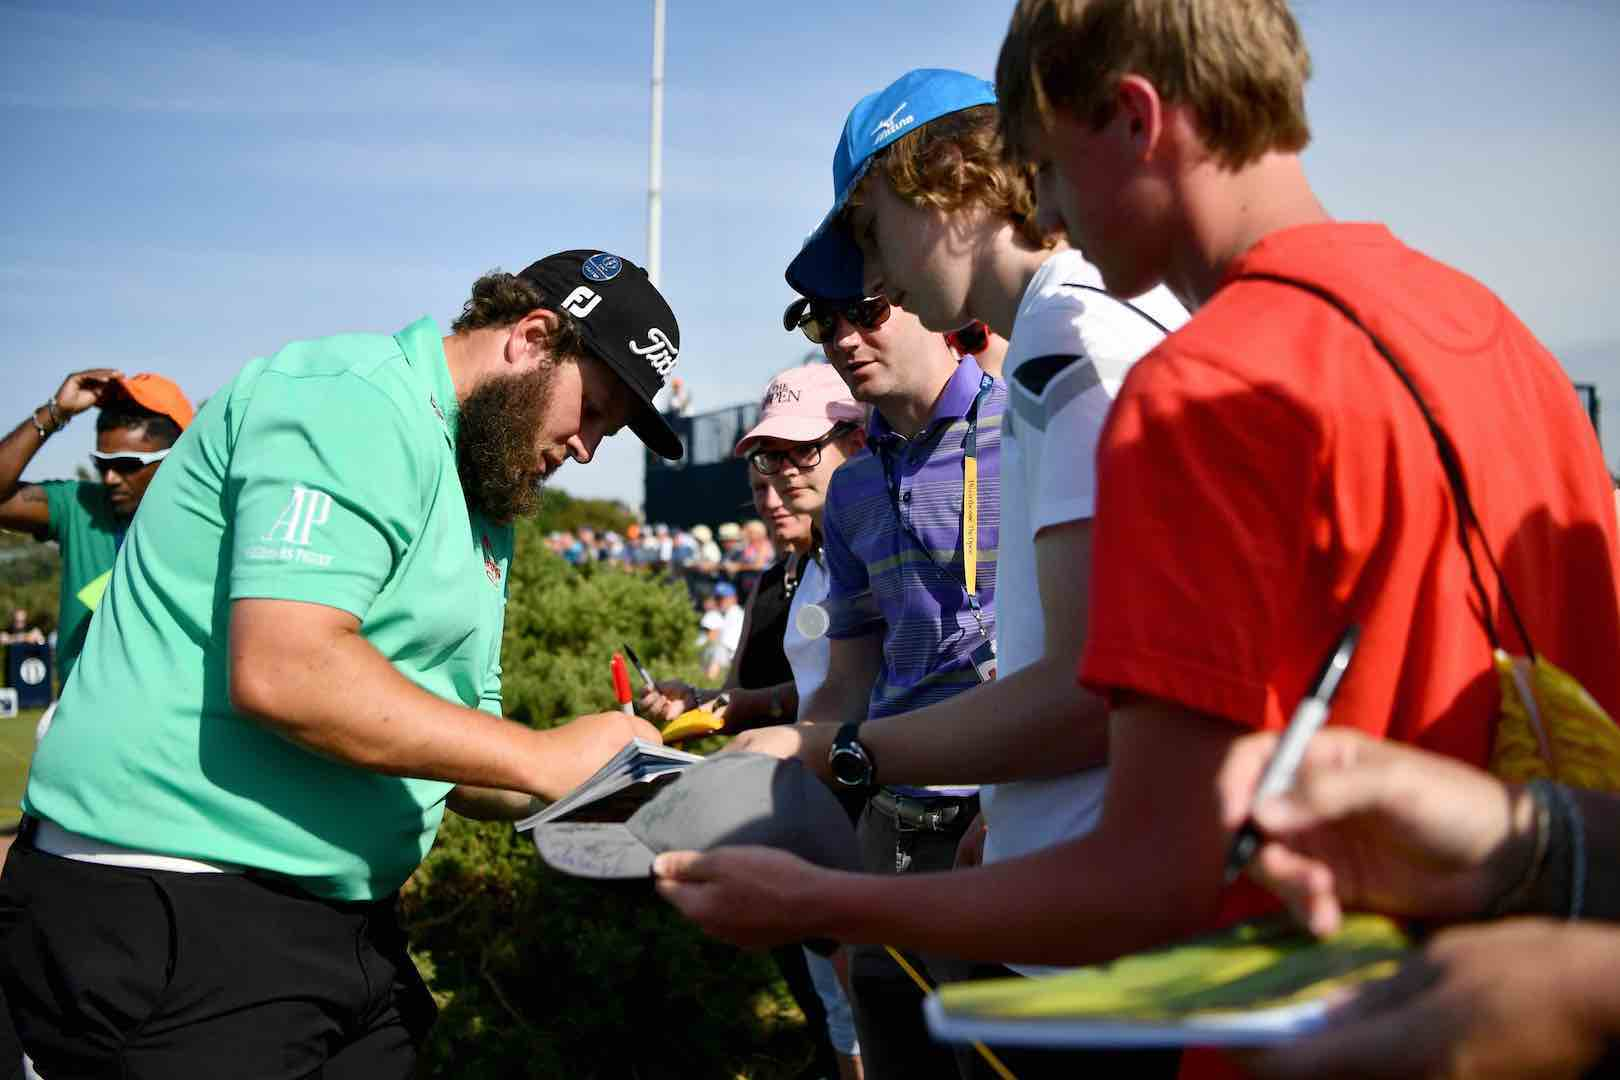 Shock jocks troll Andrew Beef Johnston